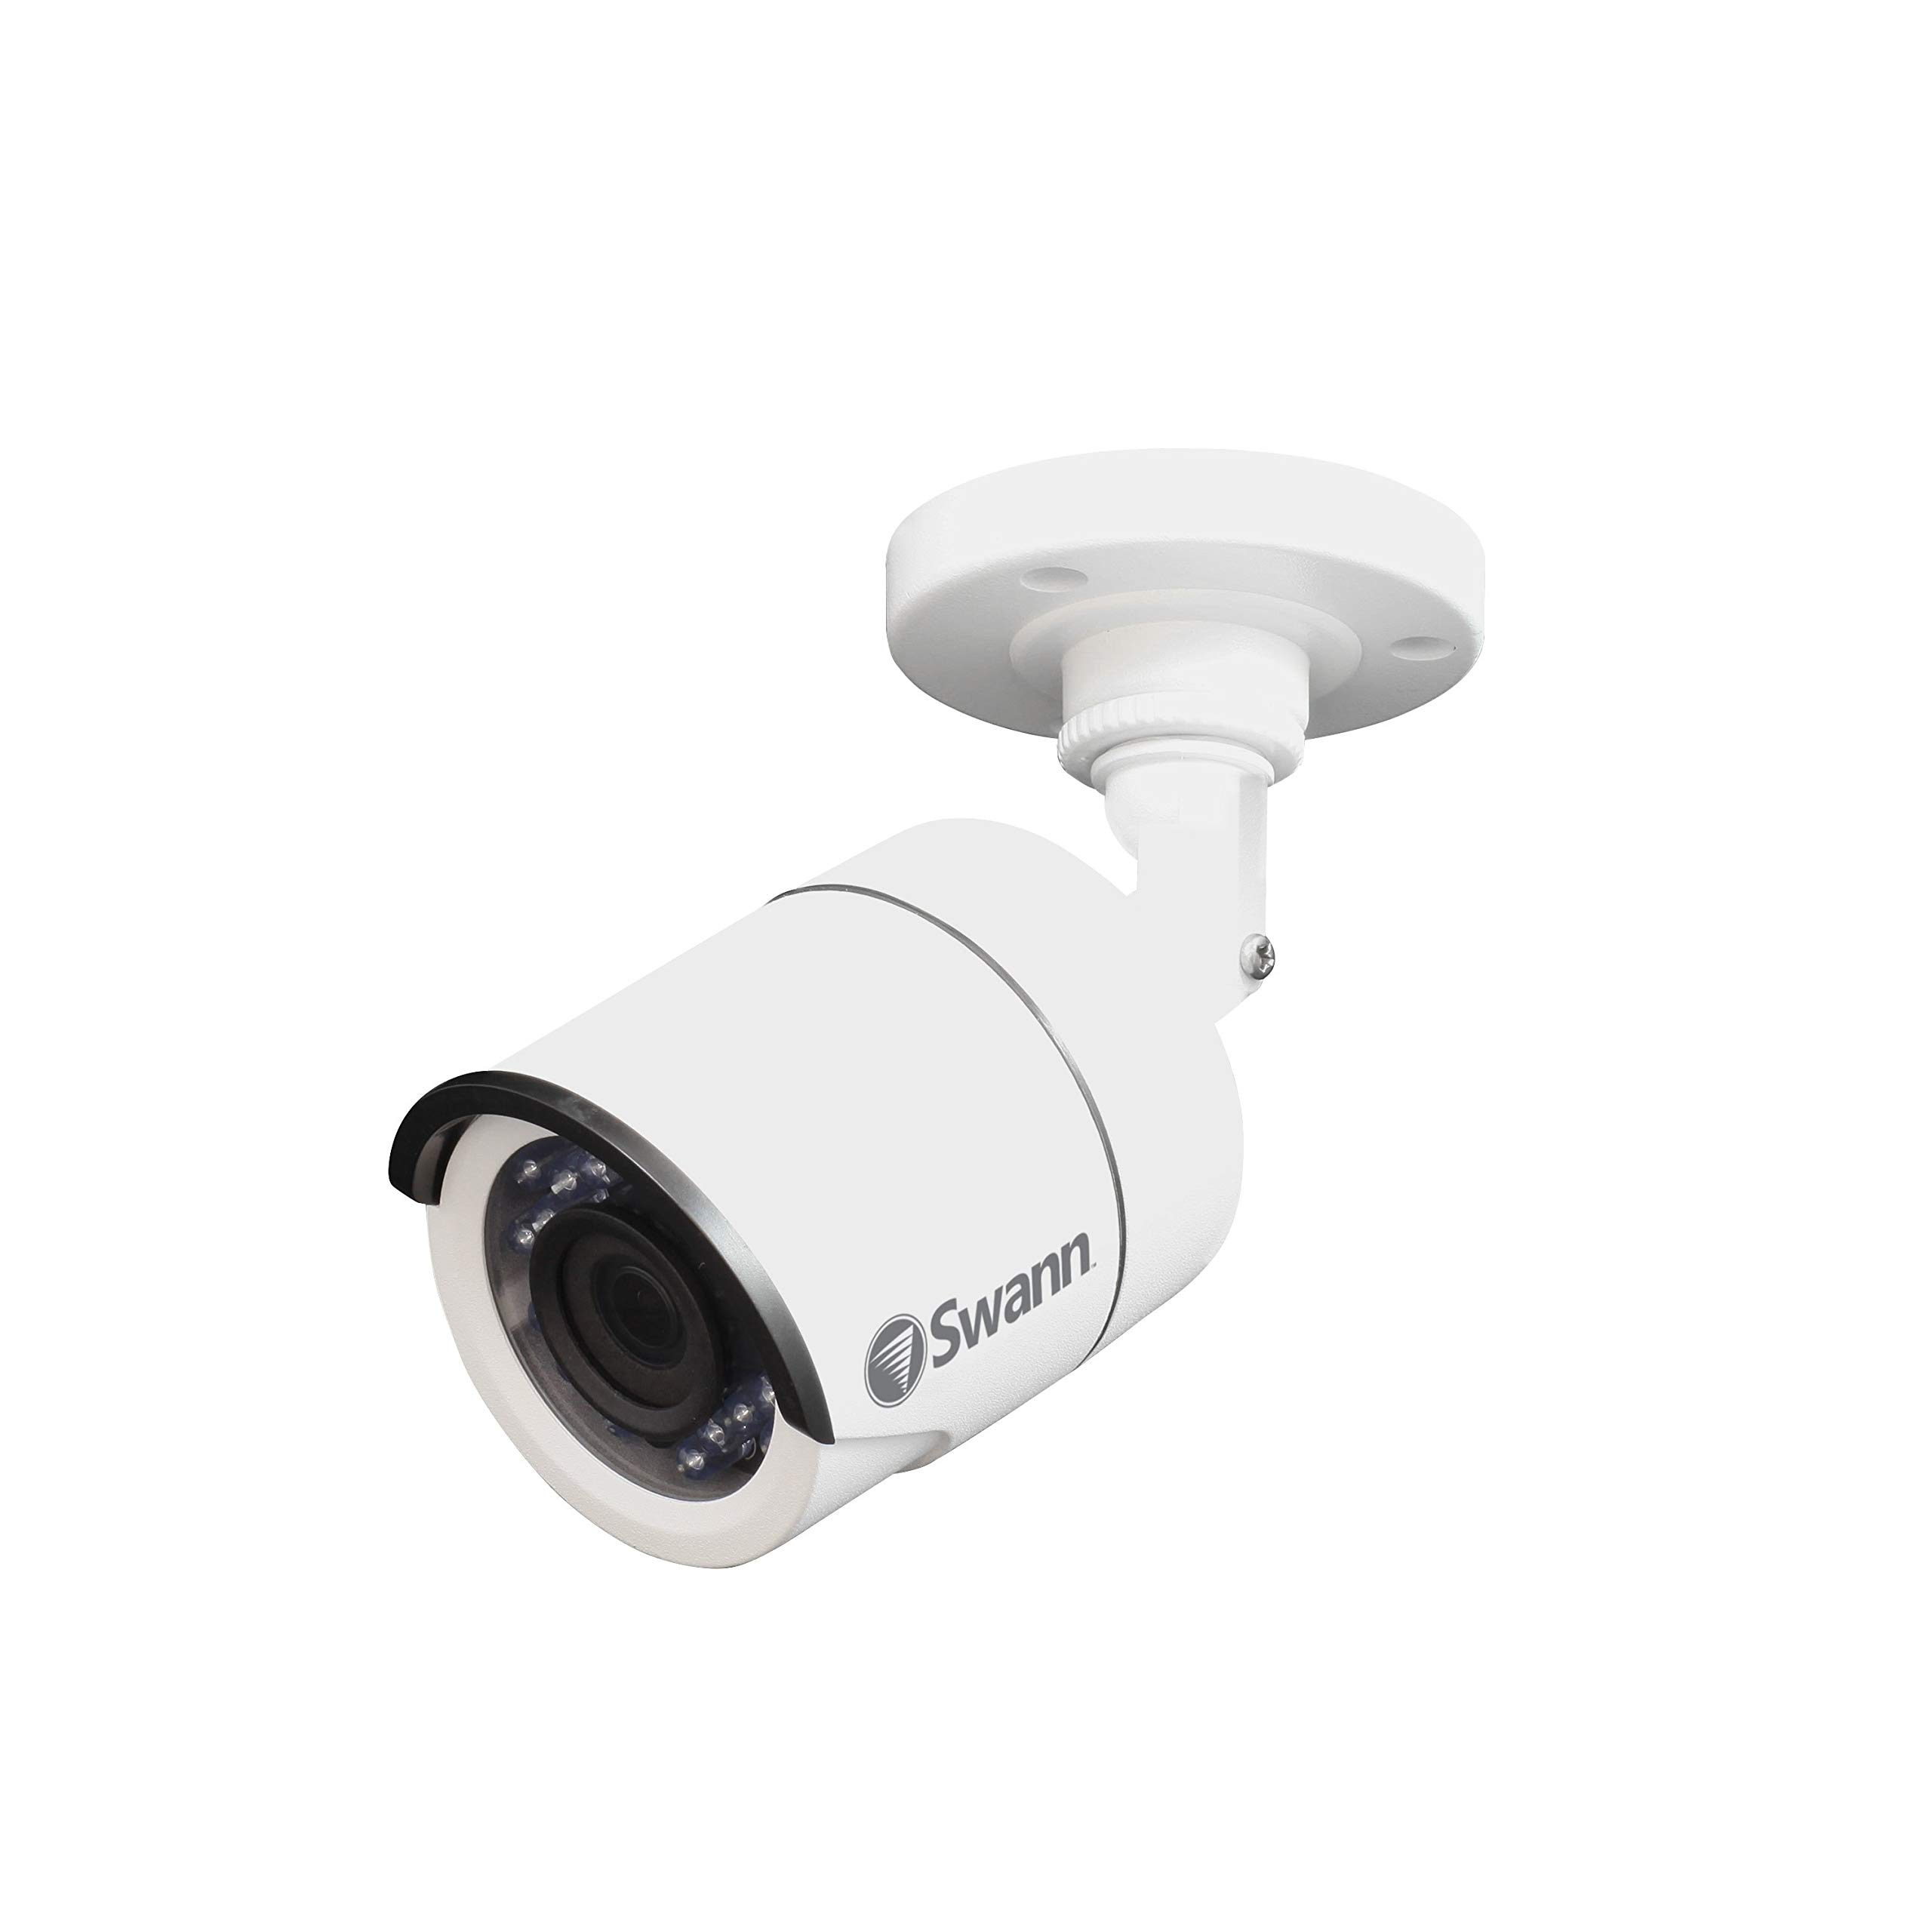 Swann PRO-T852 1080p Multi-Purpose Day/Night Security Camera with Night Vision up to 100 ft / 3m - 4-Pack by Swann (Image #4)